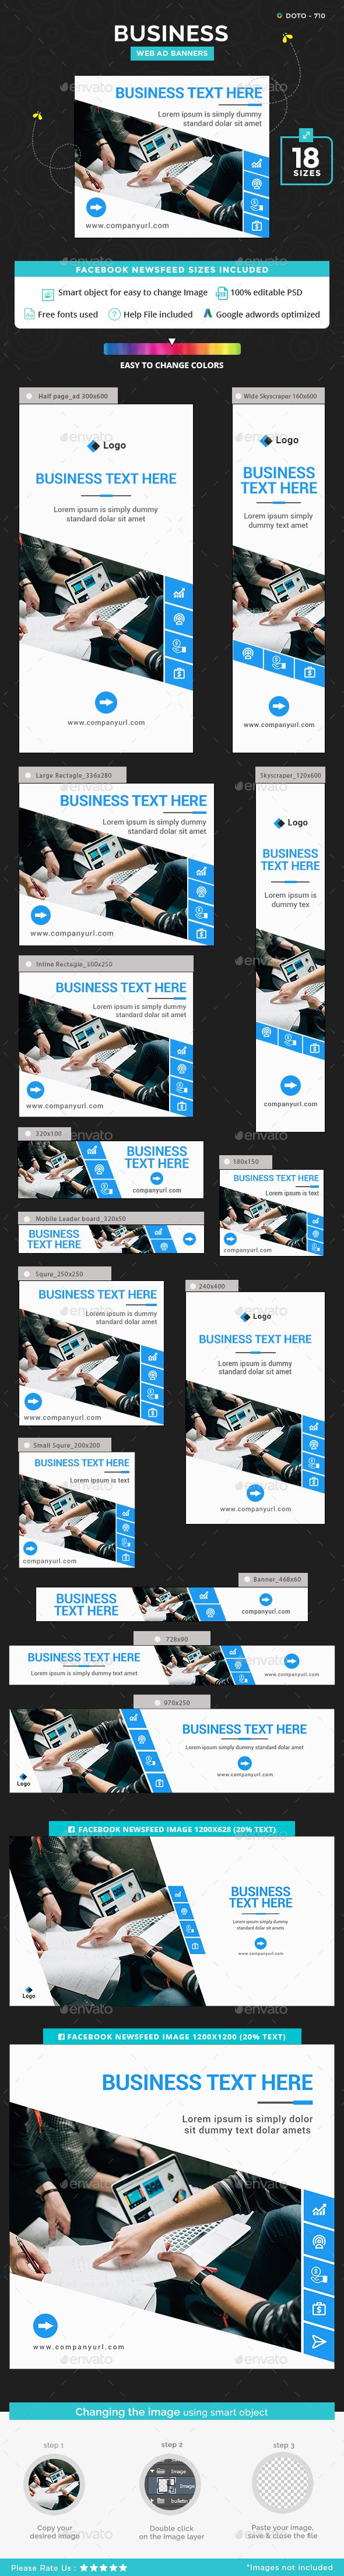 Business Banners - #Banners & Ads Web Elements